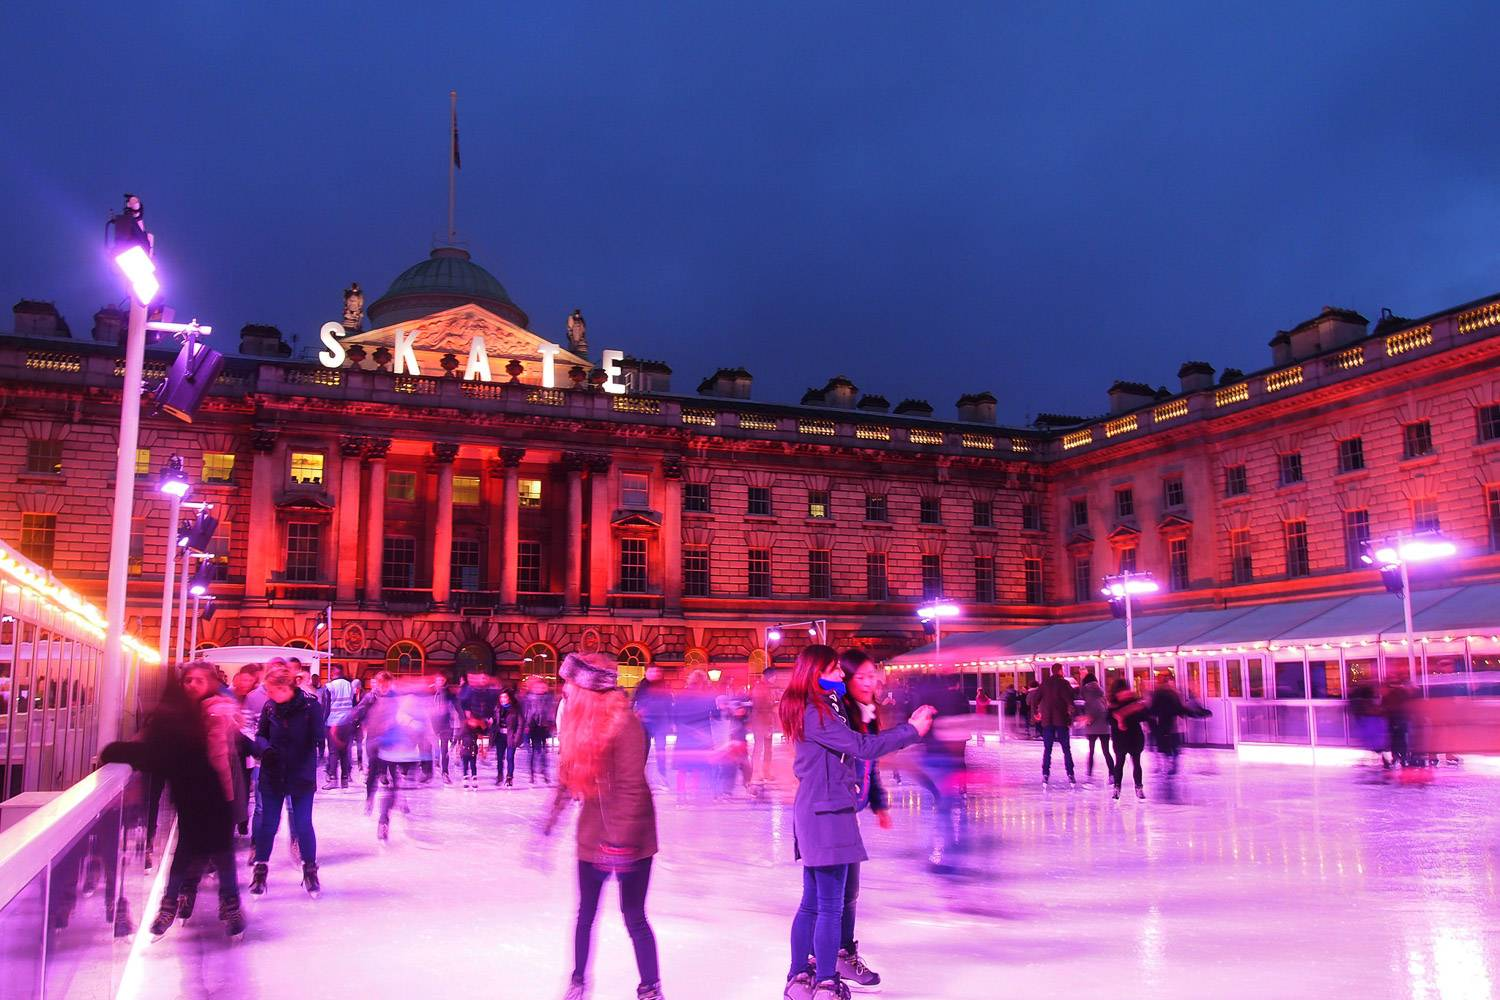 An image of Londoners ice skating at Somerset House.